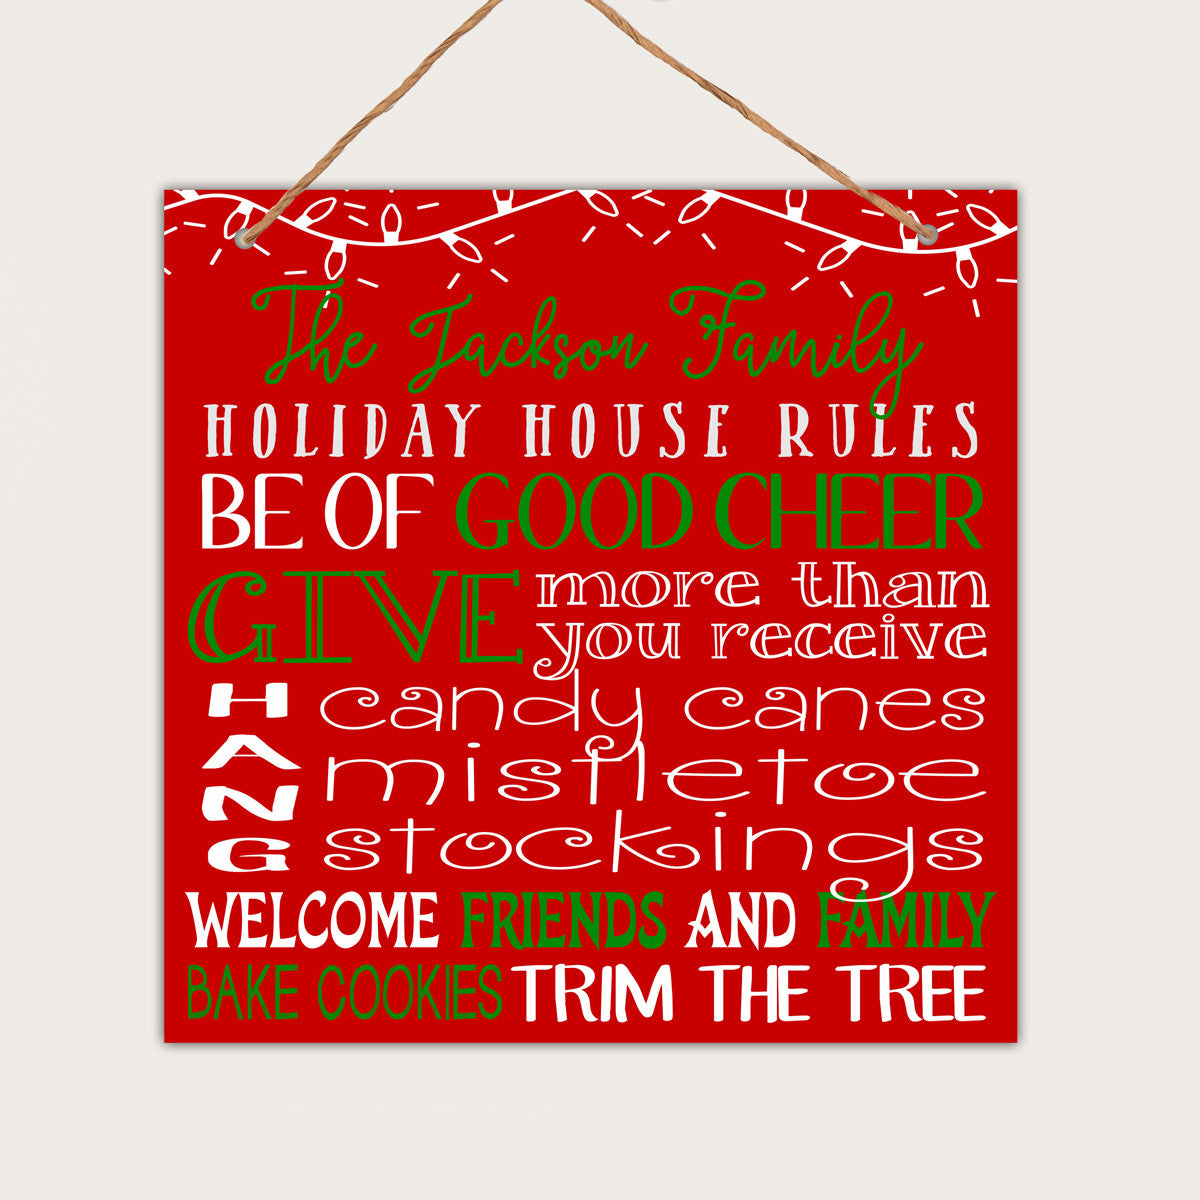 Christmas Signs.Personalized Christmas Wall Sign Jacksons Family Holiday Rules